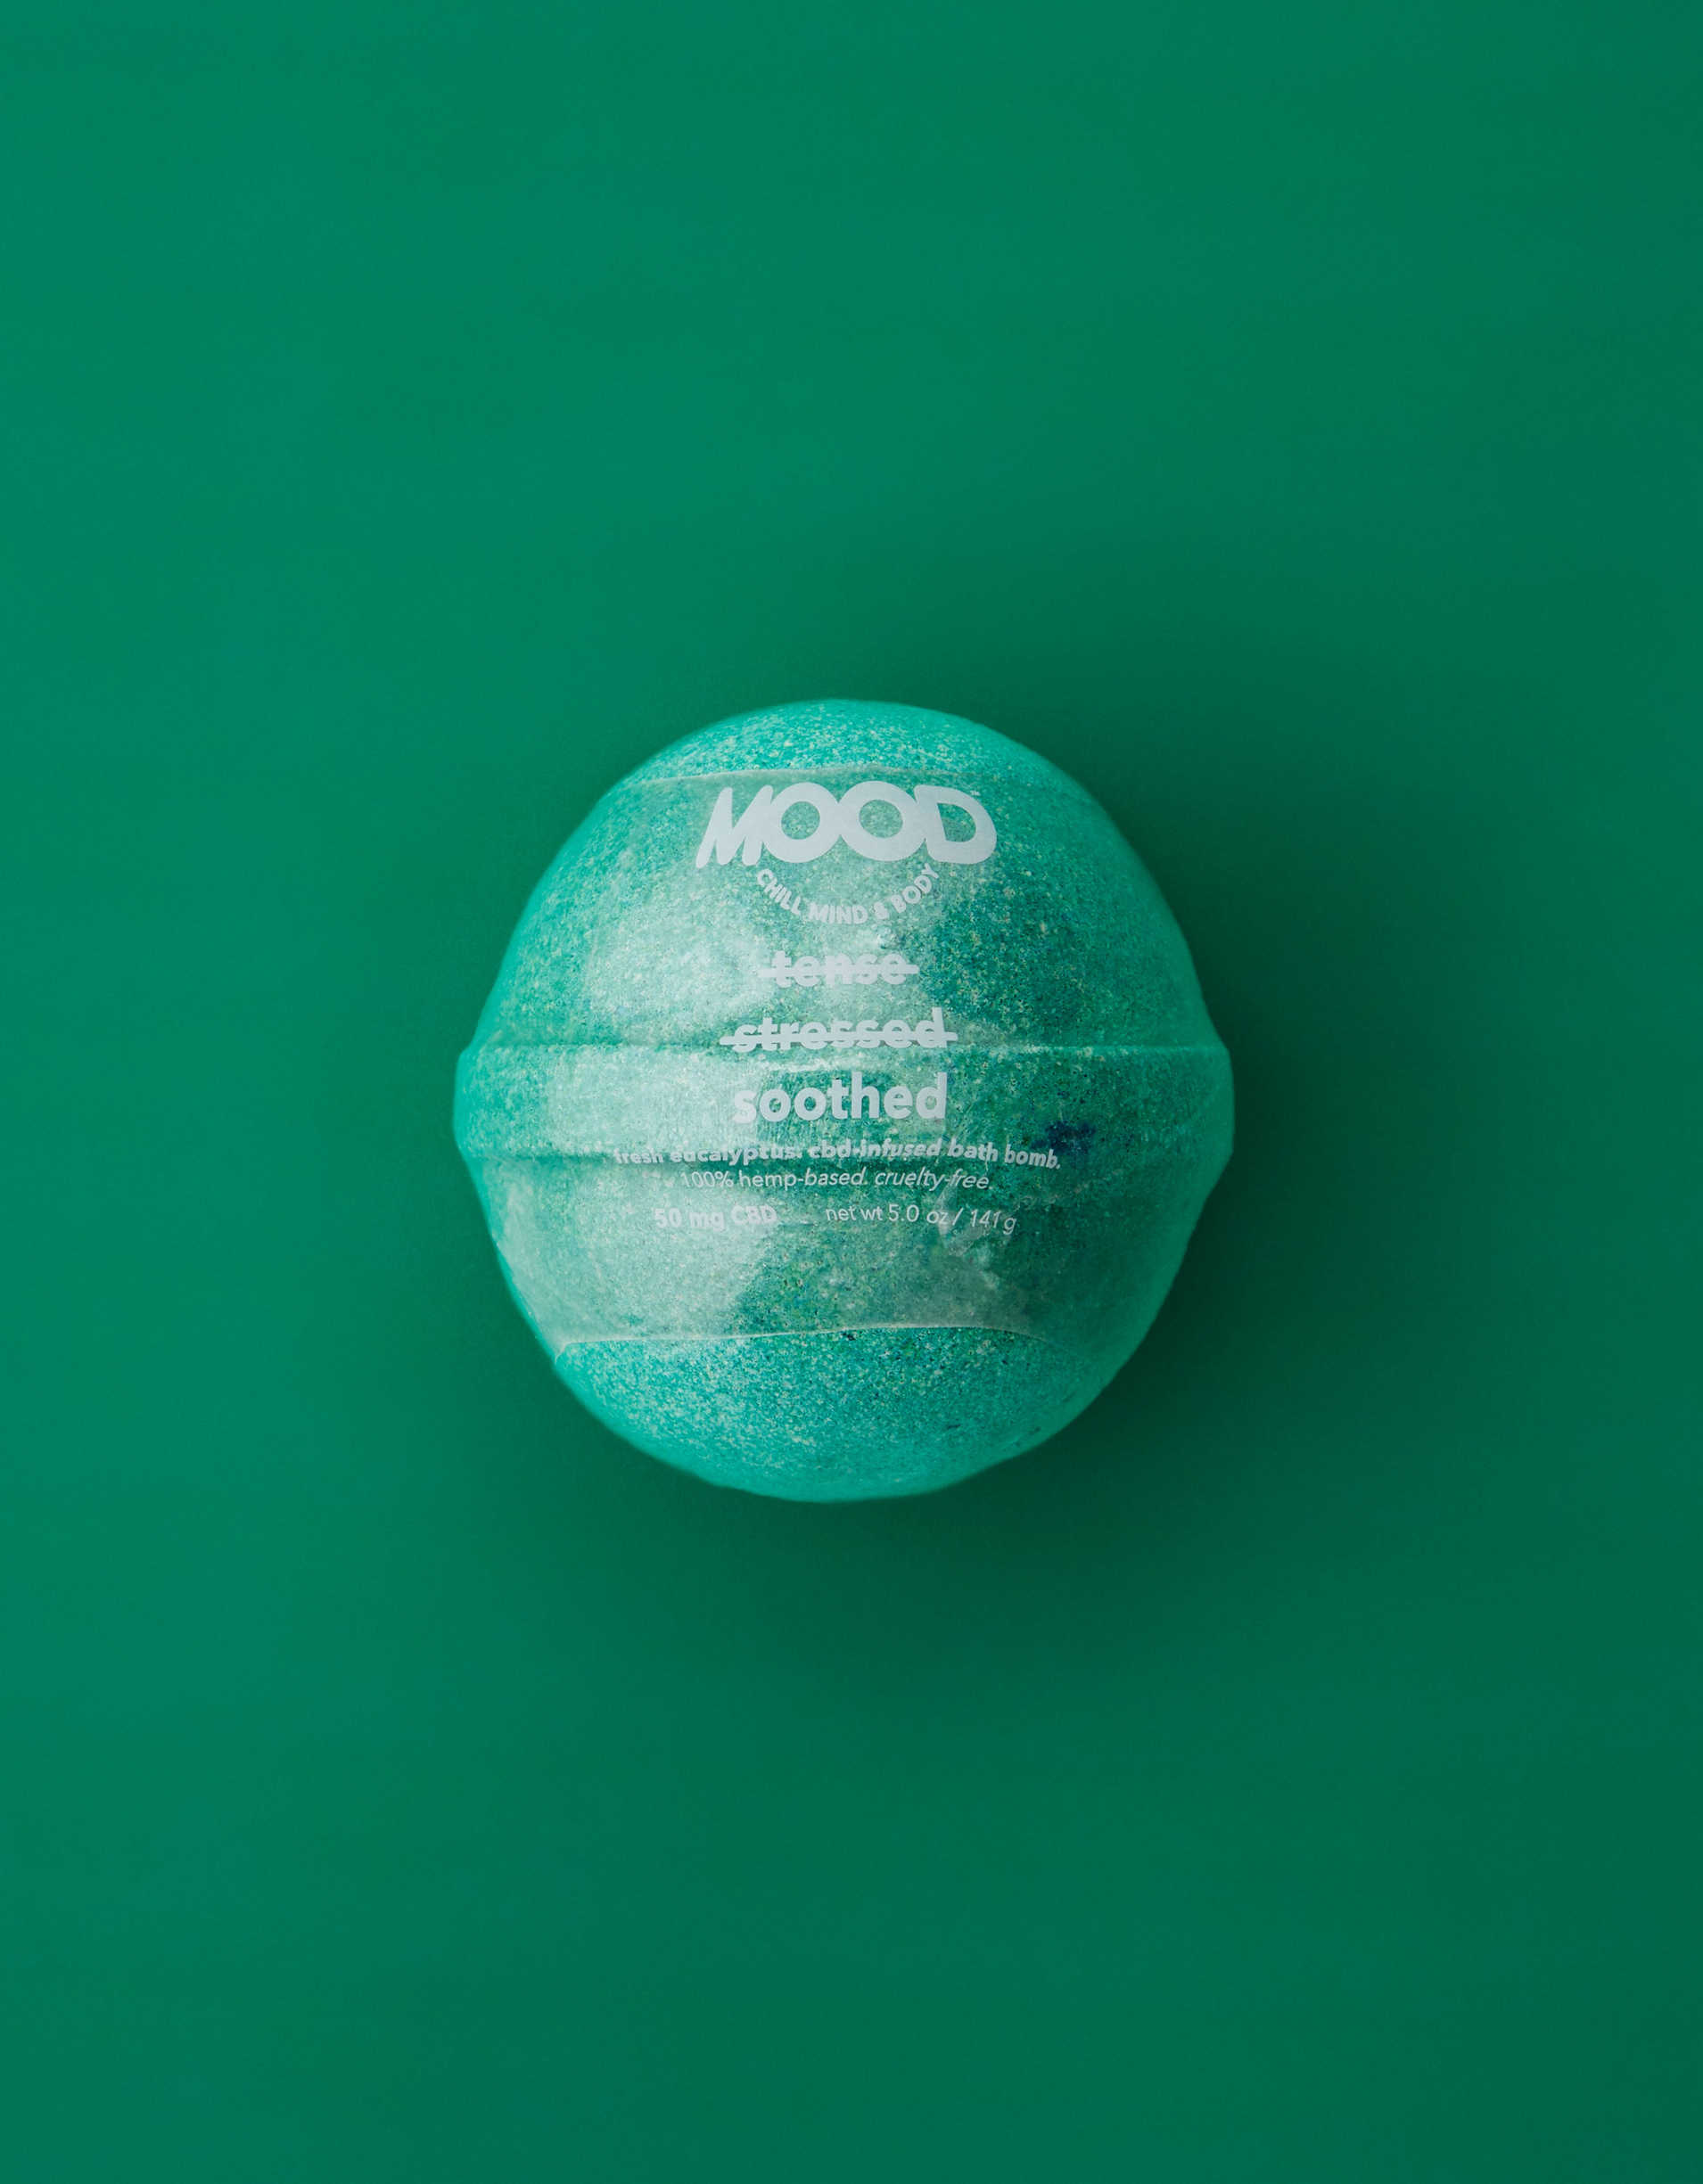 MOOD Soothed CBD-Infused Bath Bomb